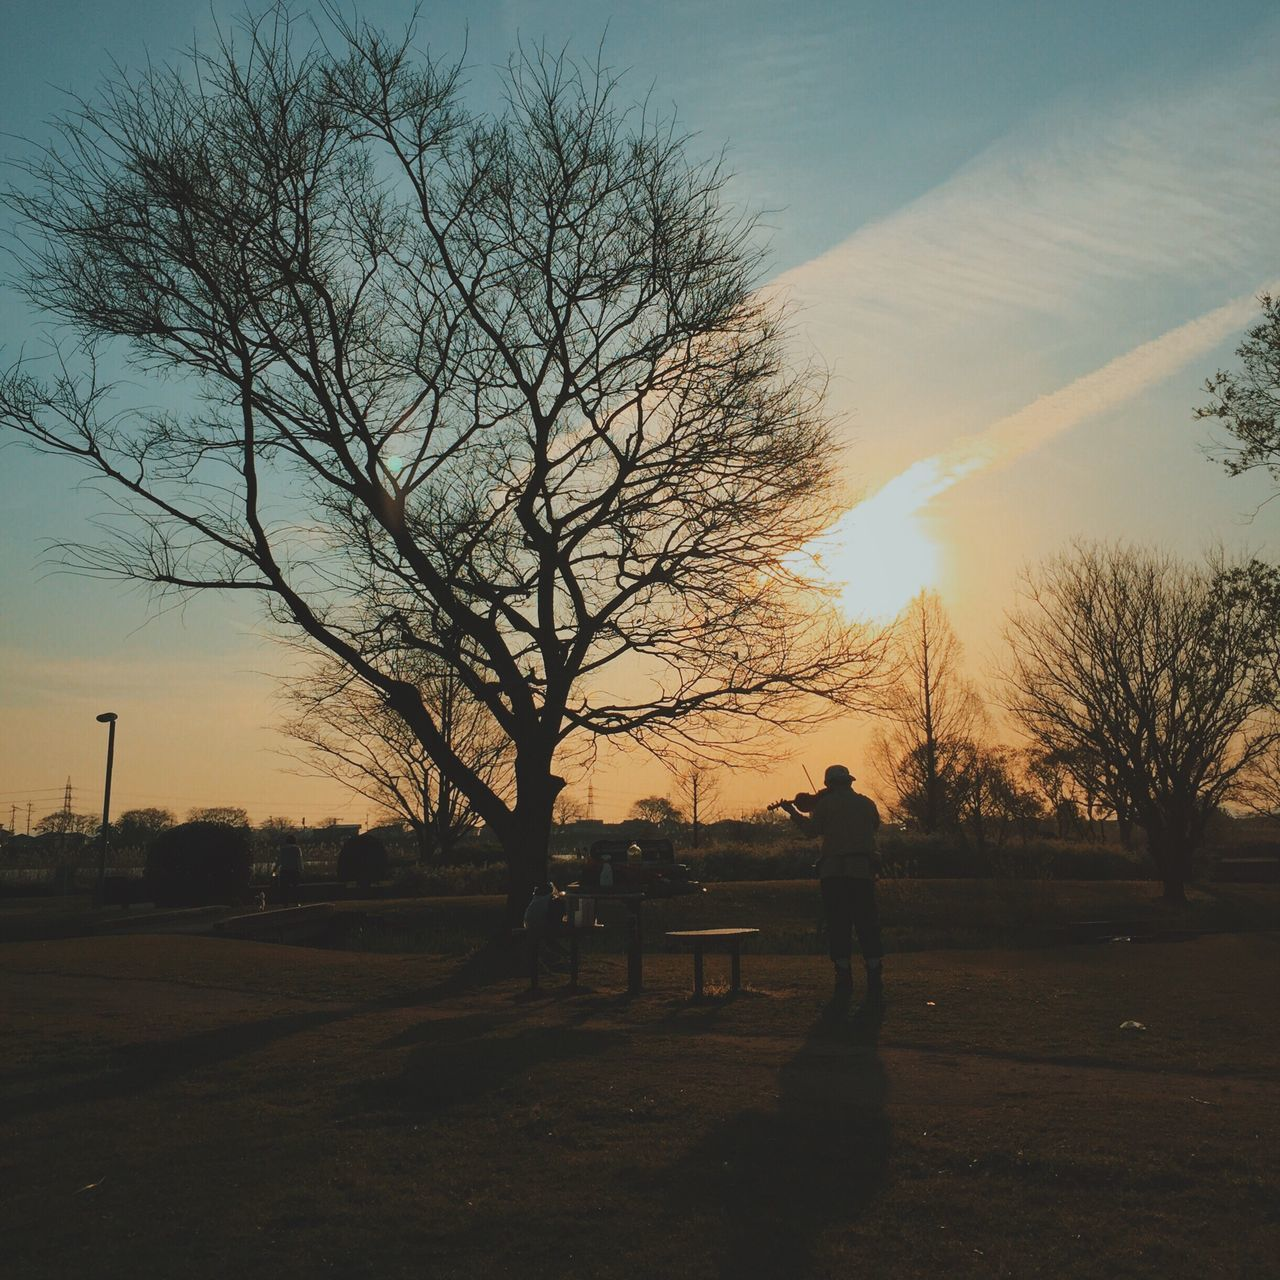 Sunset Sky Nature Tree Outdoors Silhouette Beauty In Nature Real People VSCO Eyem Best Shots Mobilephotography